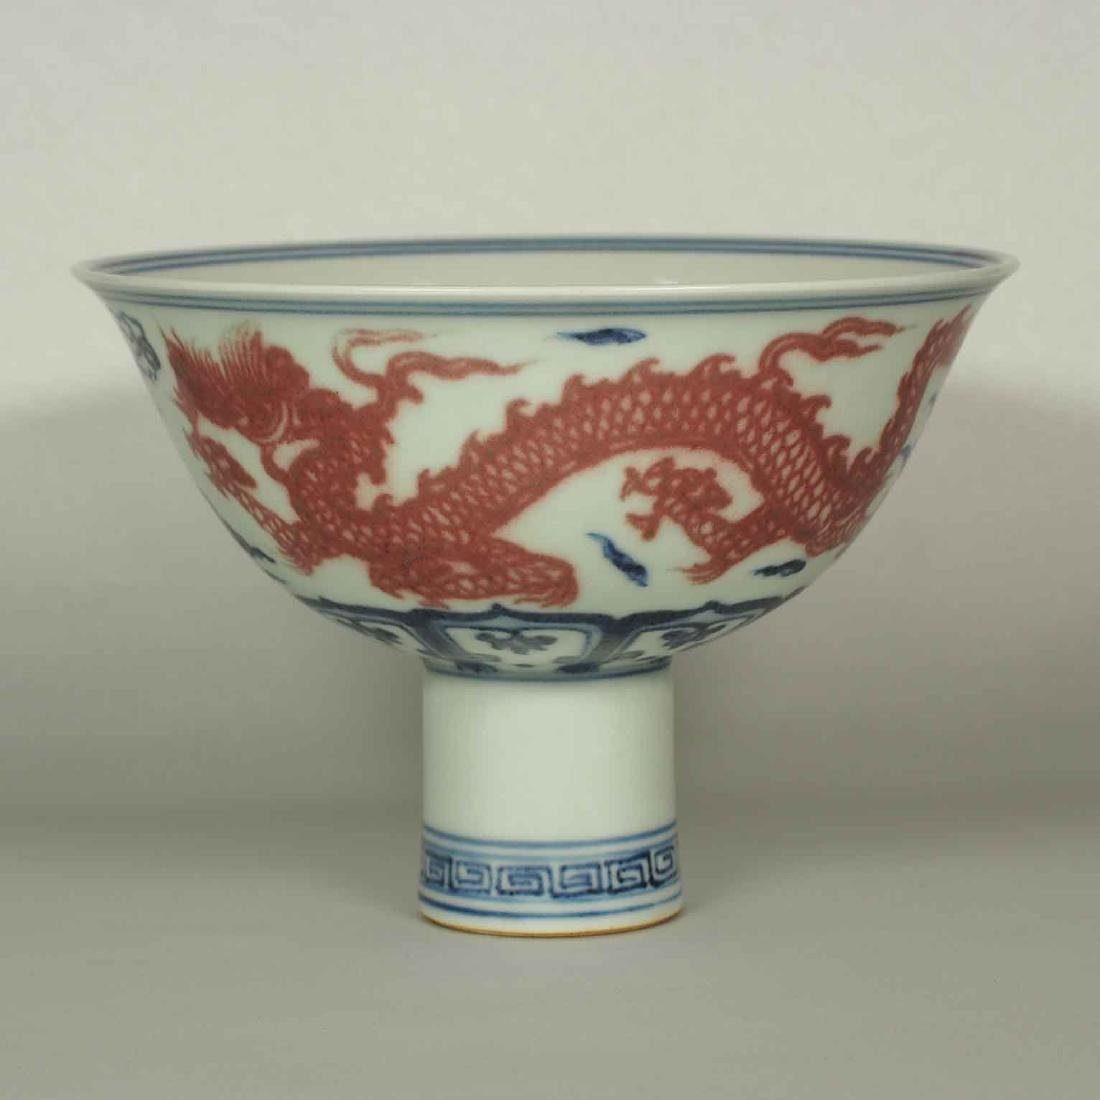 Stemcup With Dragon Design, Xuande Mark, Mid Ming - 3